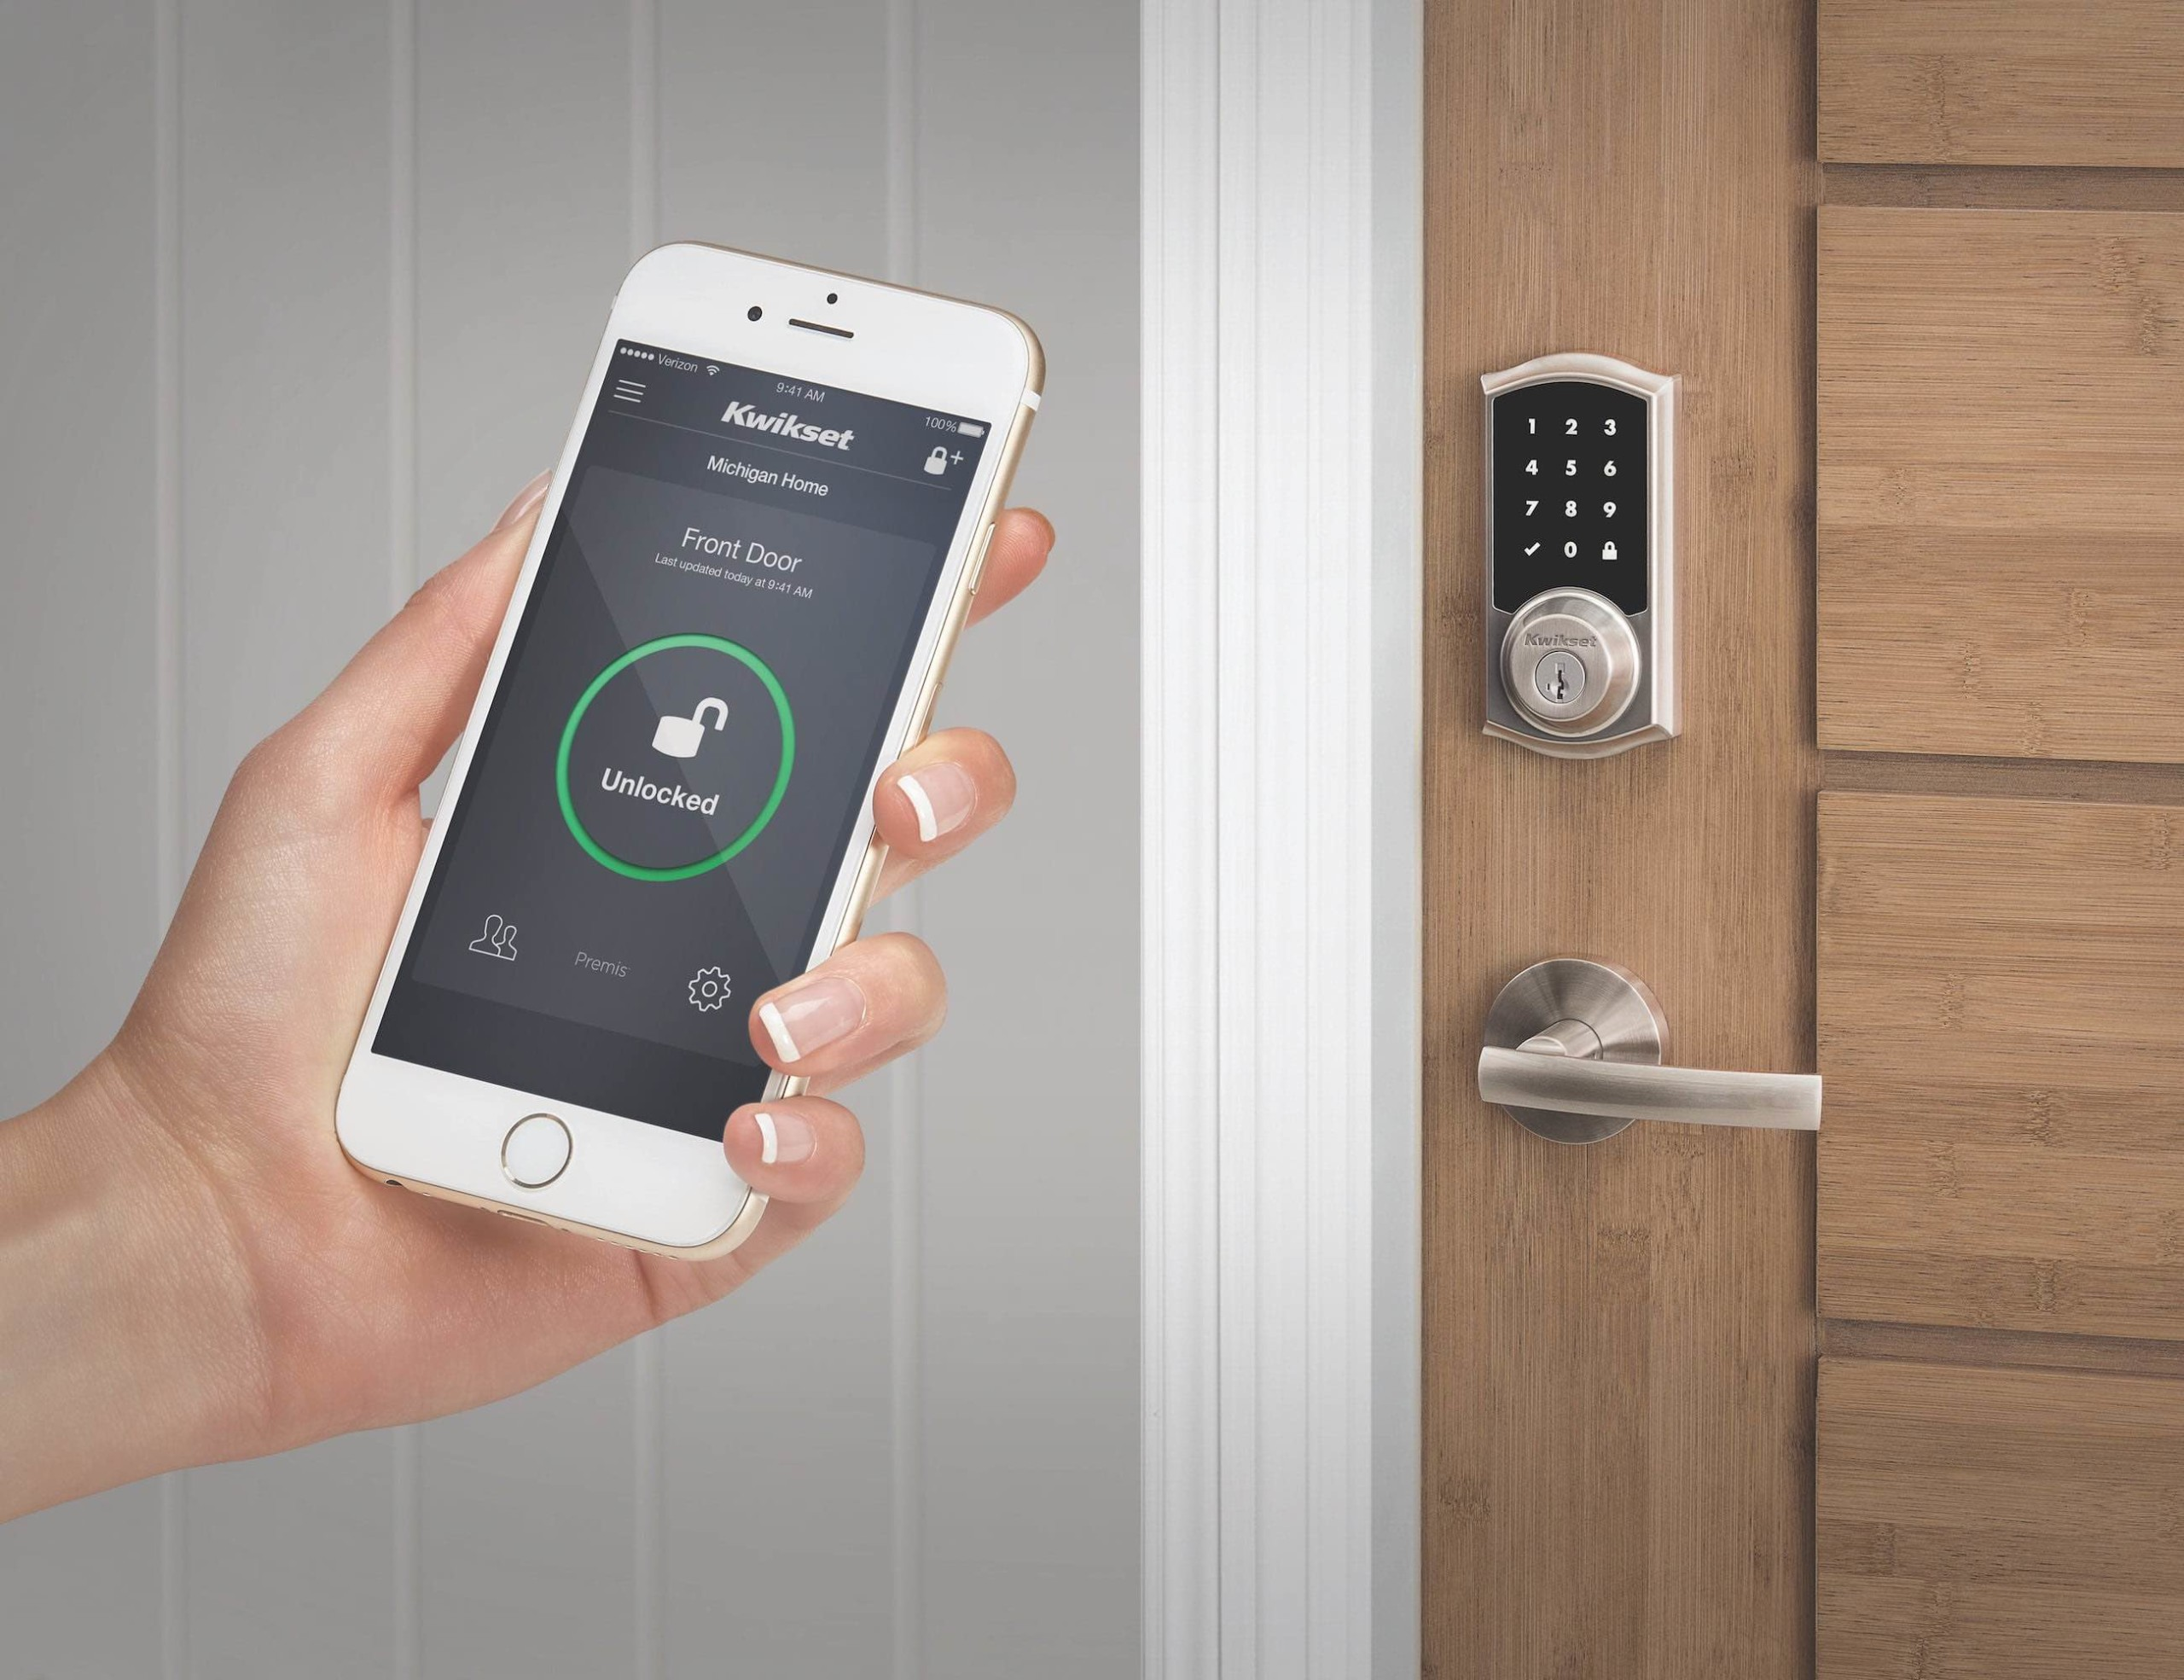 Kwikset Premis Touchscreen Smart Lock